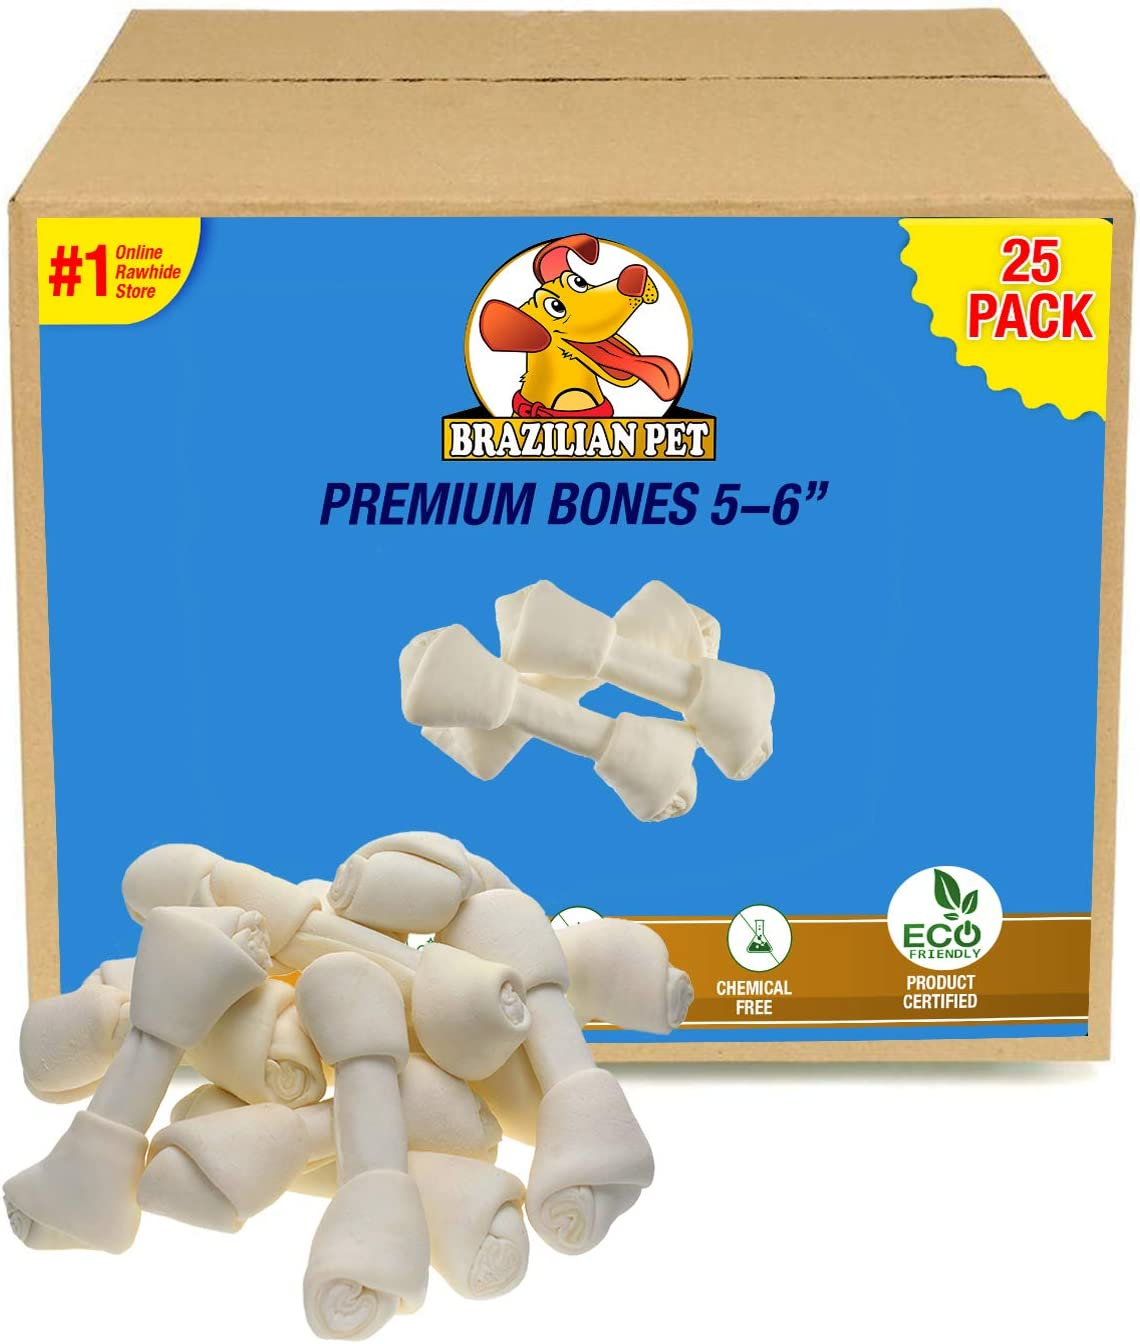 Brazilian Pet Rawhide Bones 5-6 Inches, Premium Quality Dog Bones, 100 Natural, Beef Hides Chews